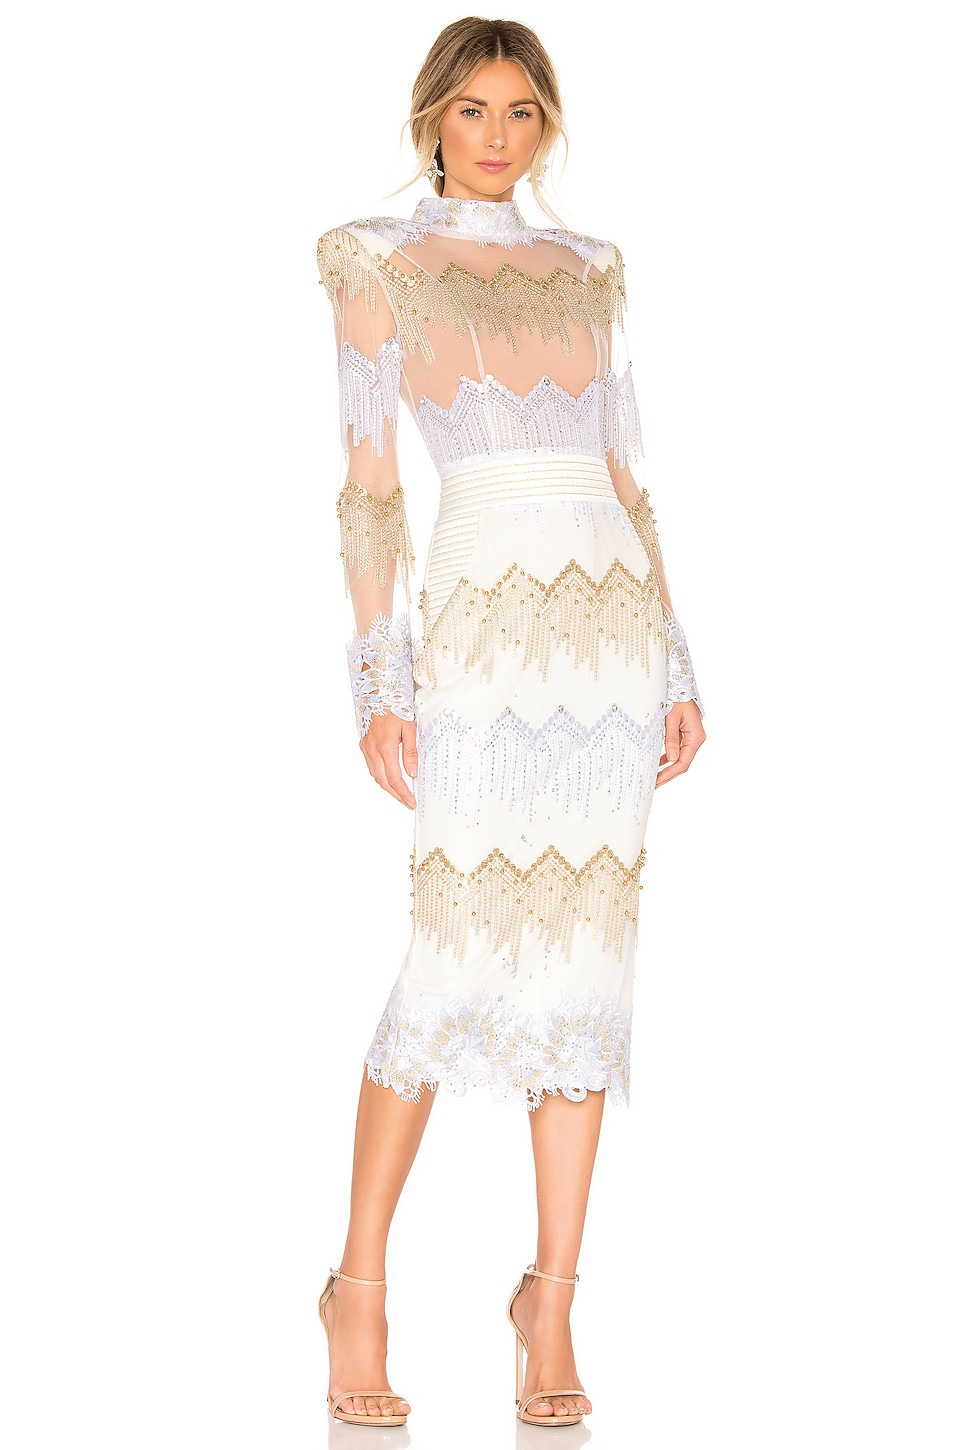 Zhivago Chrysler Midi Dress in Moet